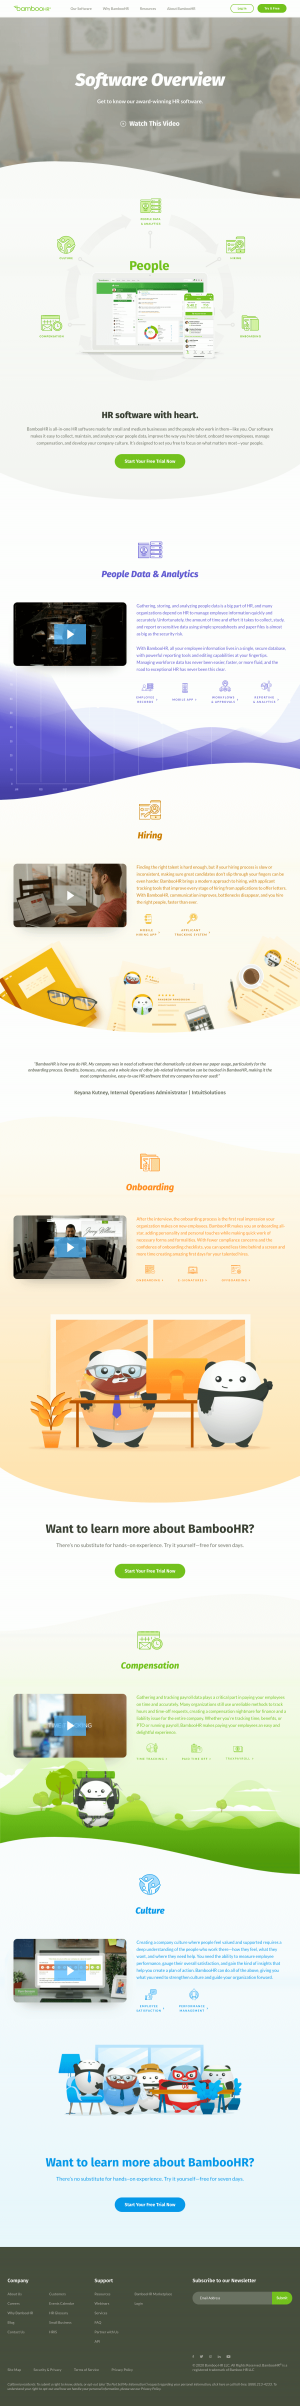 BambooHR – Features page